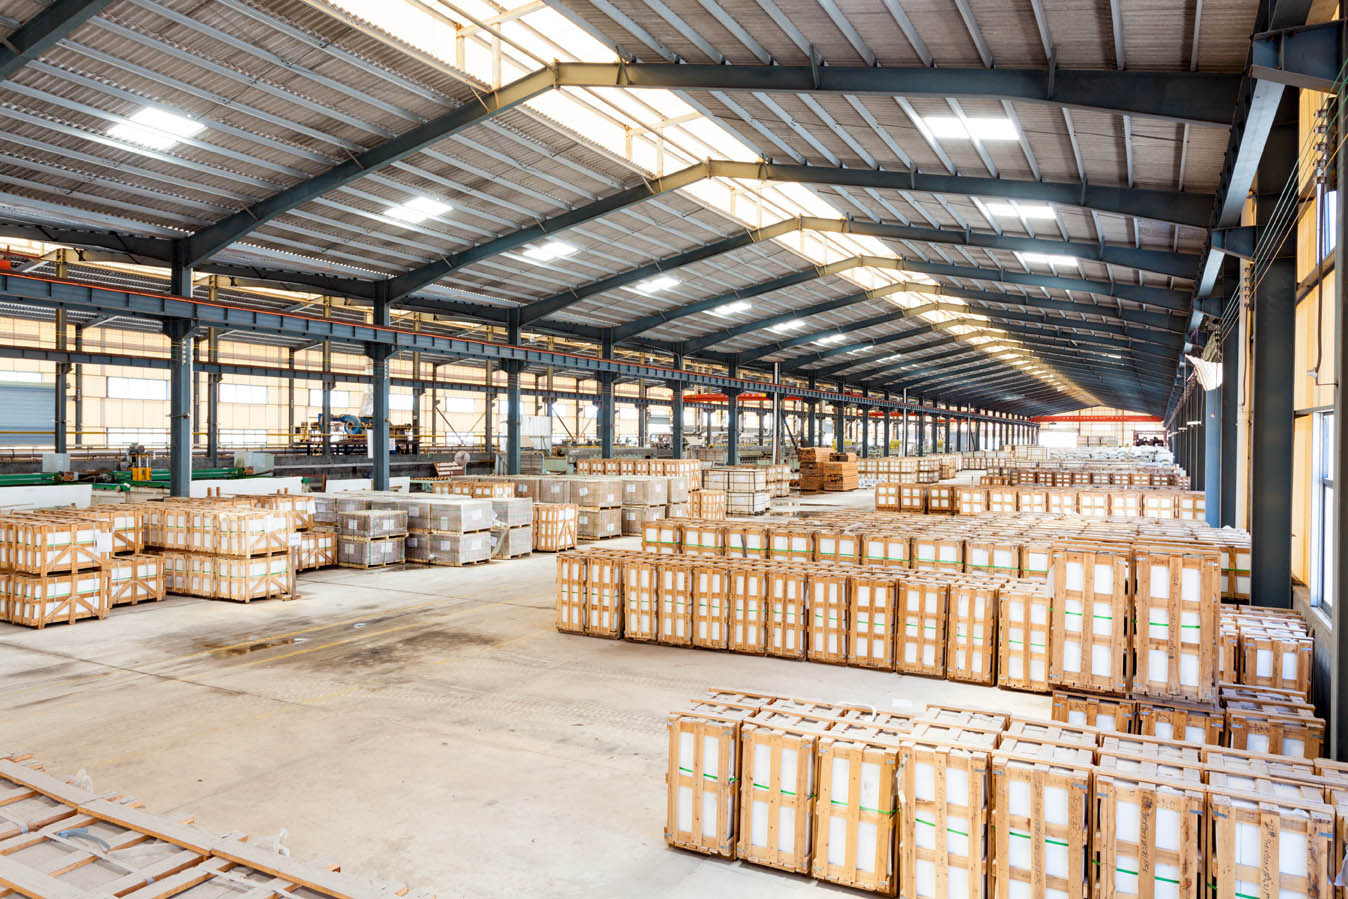 Best 5 Warehouse Design Ideas | WorldBuild365